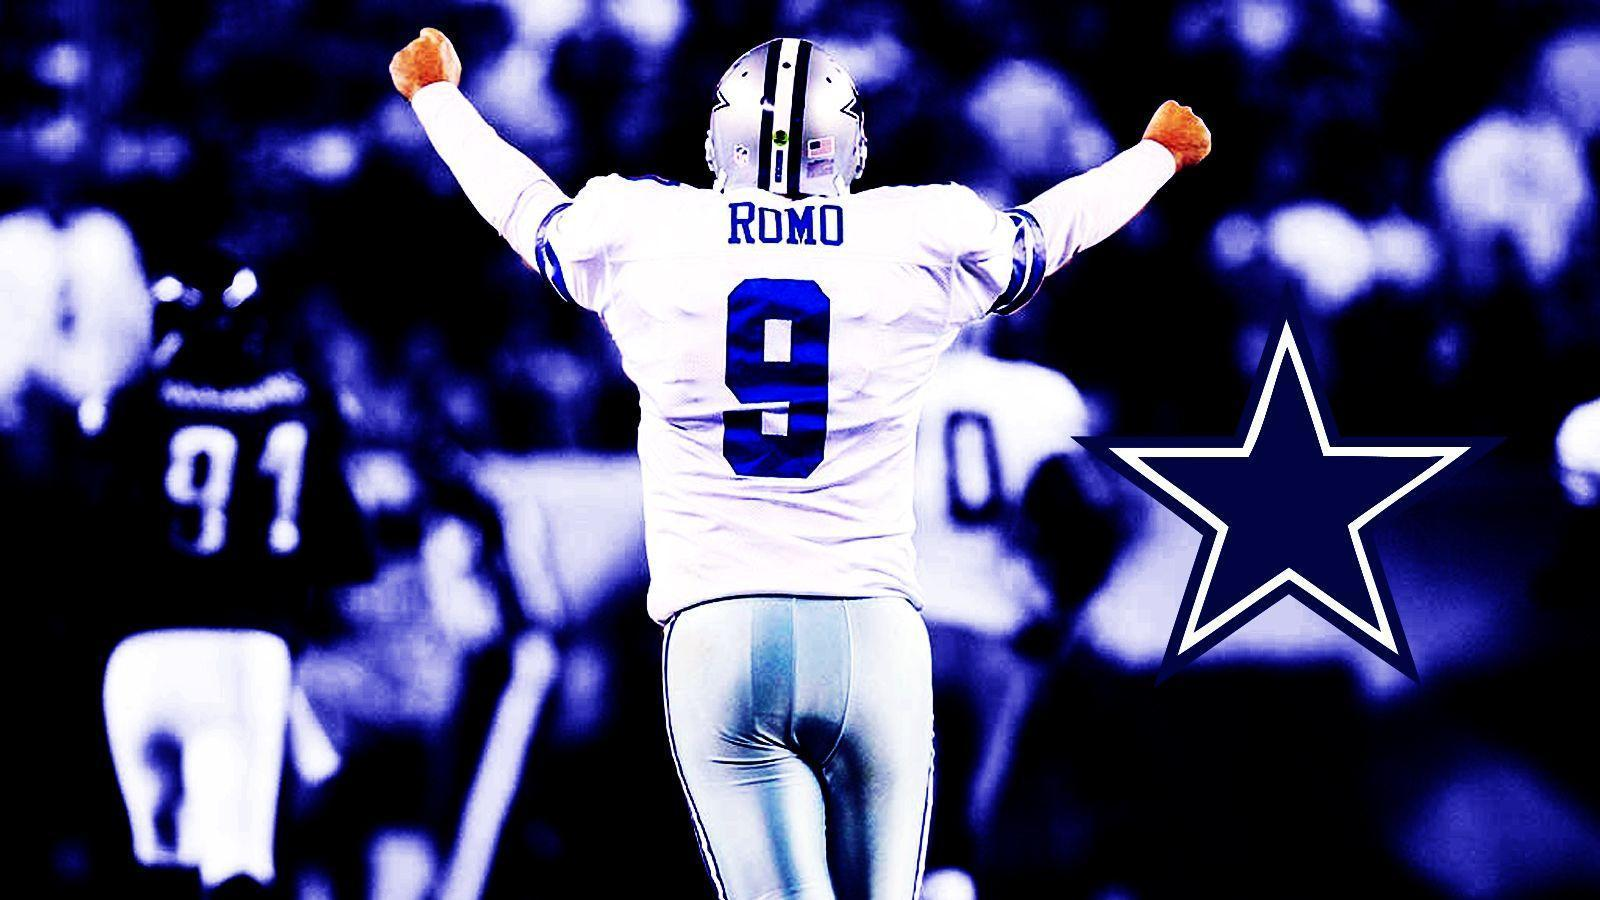 Tony Romo Wallpapers - Wallpaper Cave